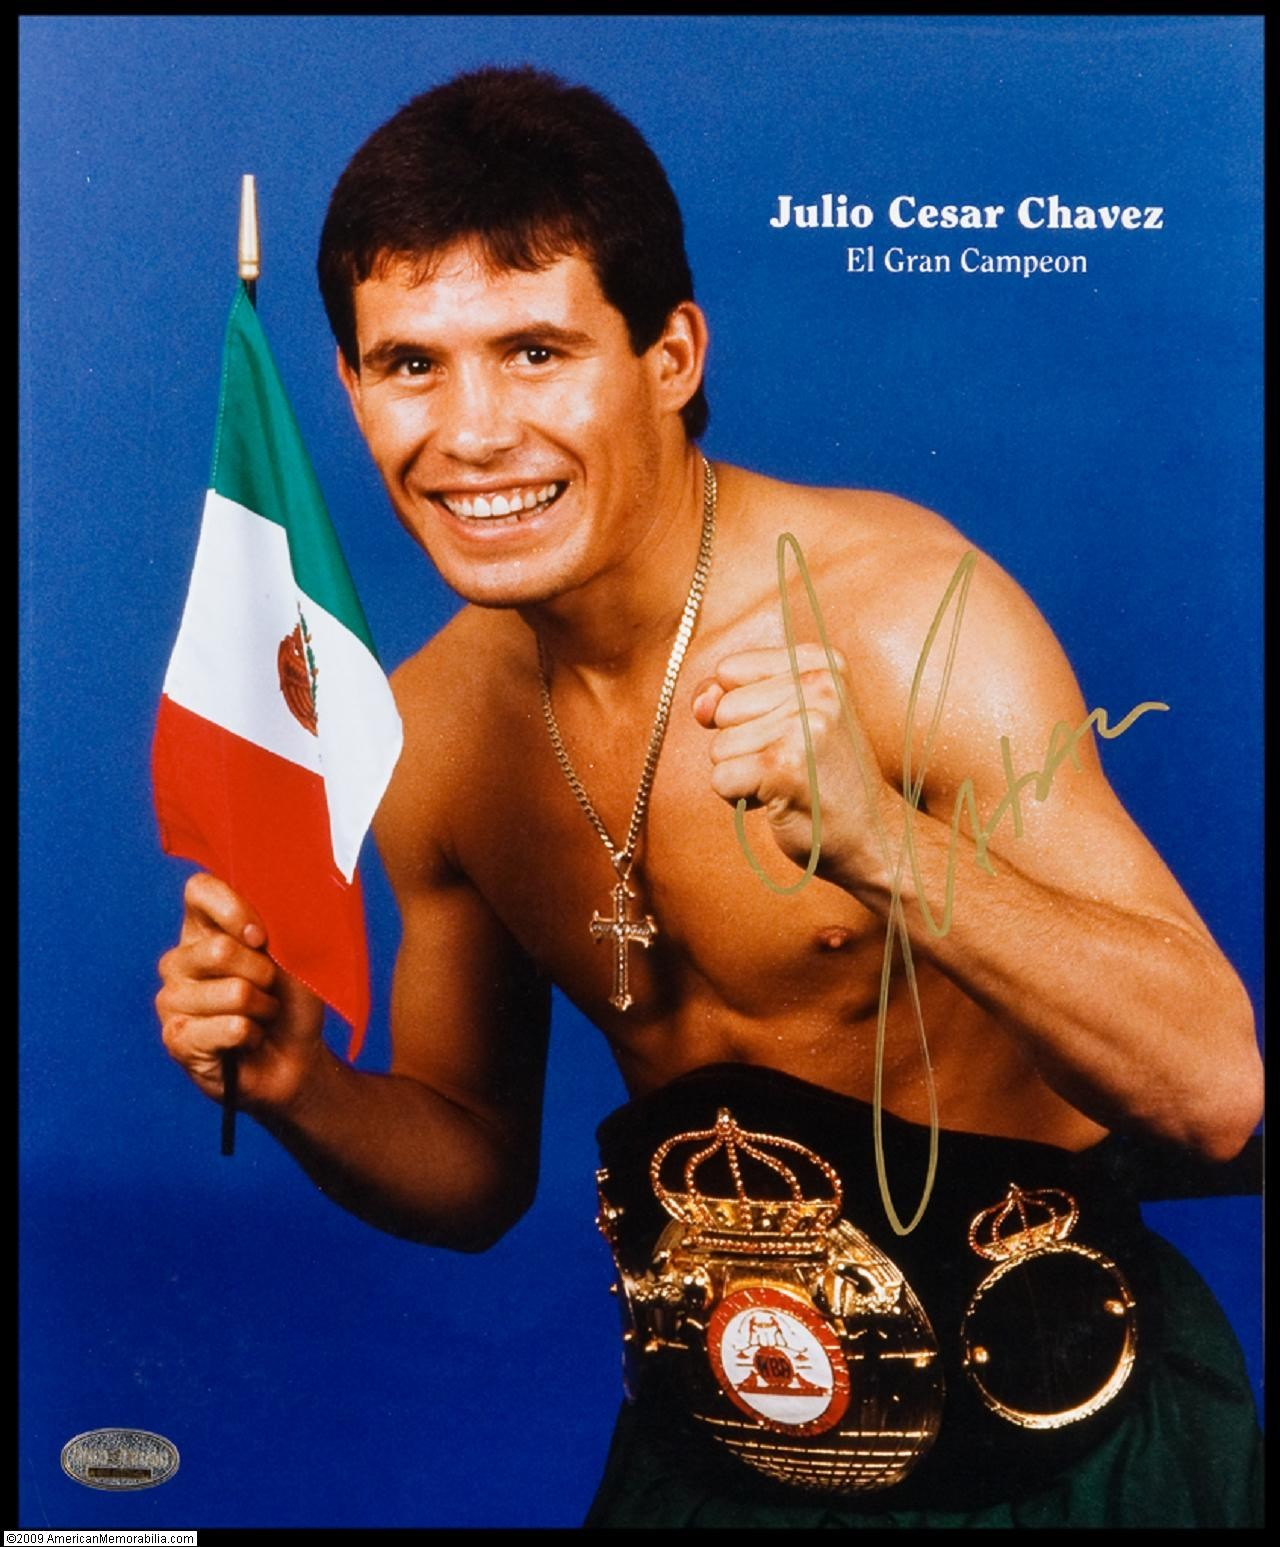 Julio Cesar Chavez | Known people - famous people news and ...